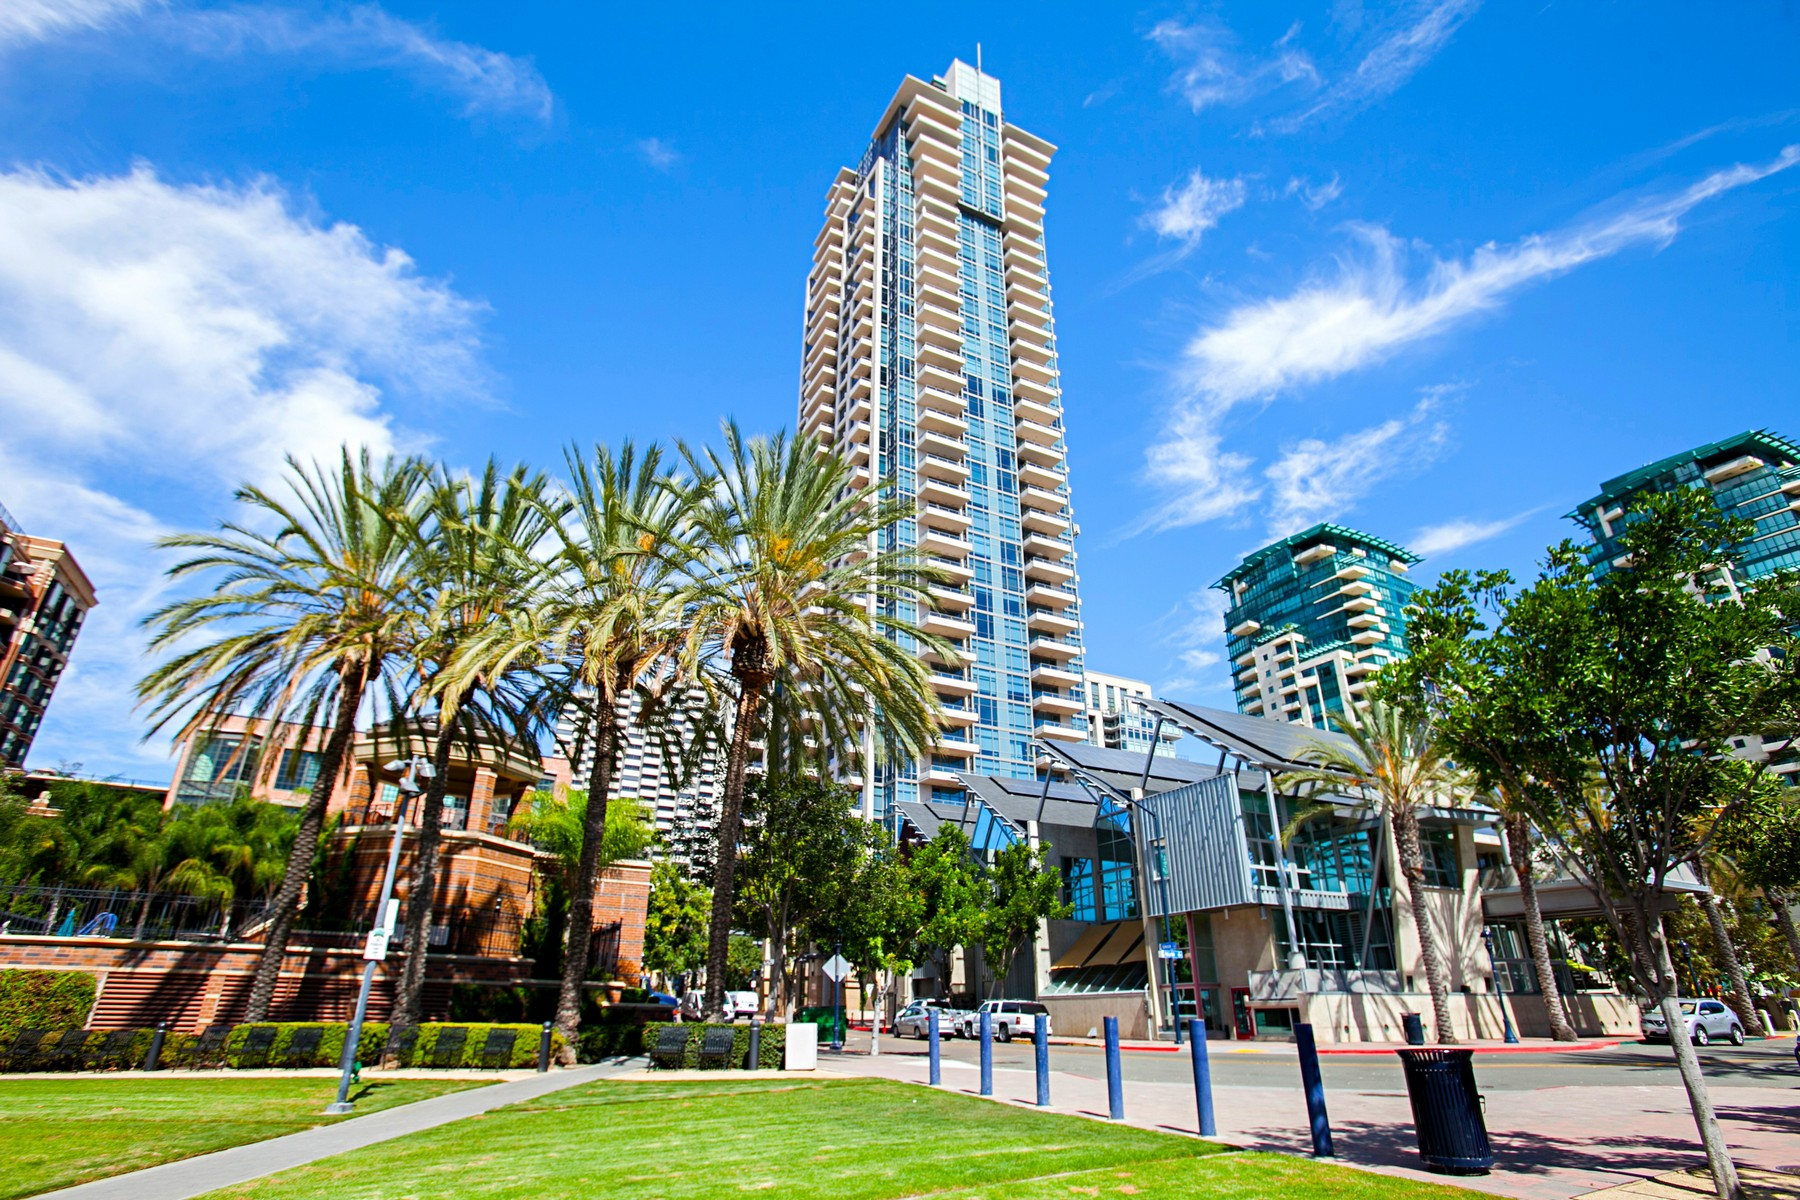 Additional photo for property listing at 550 Front street #1208  San Diego, California 92101 Estados Unidos